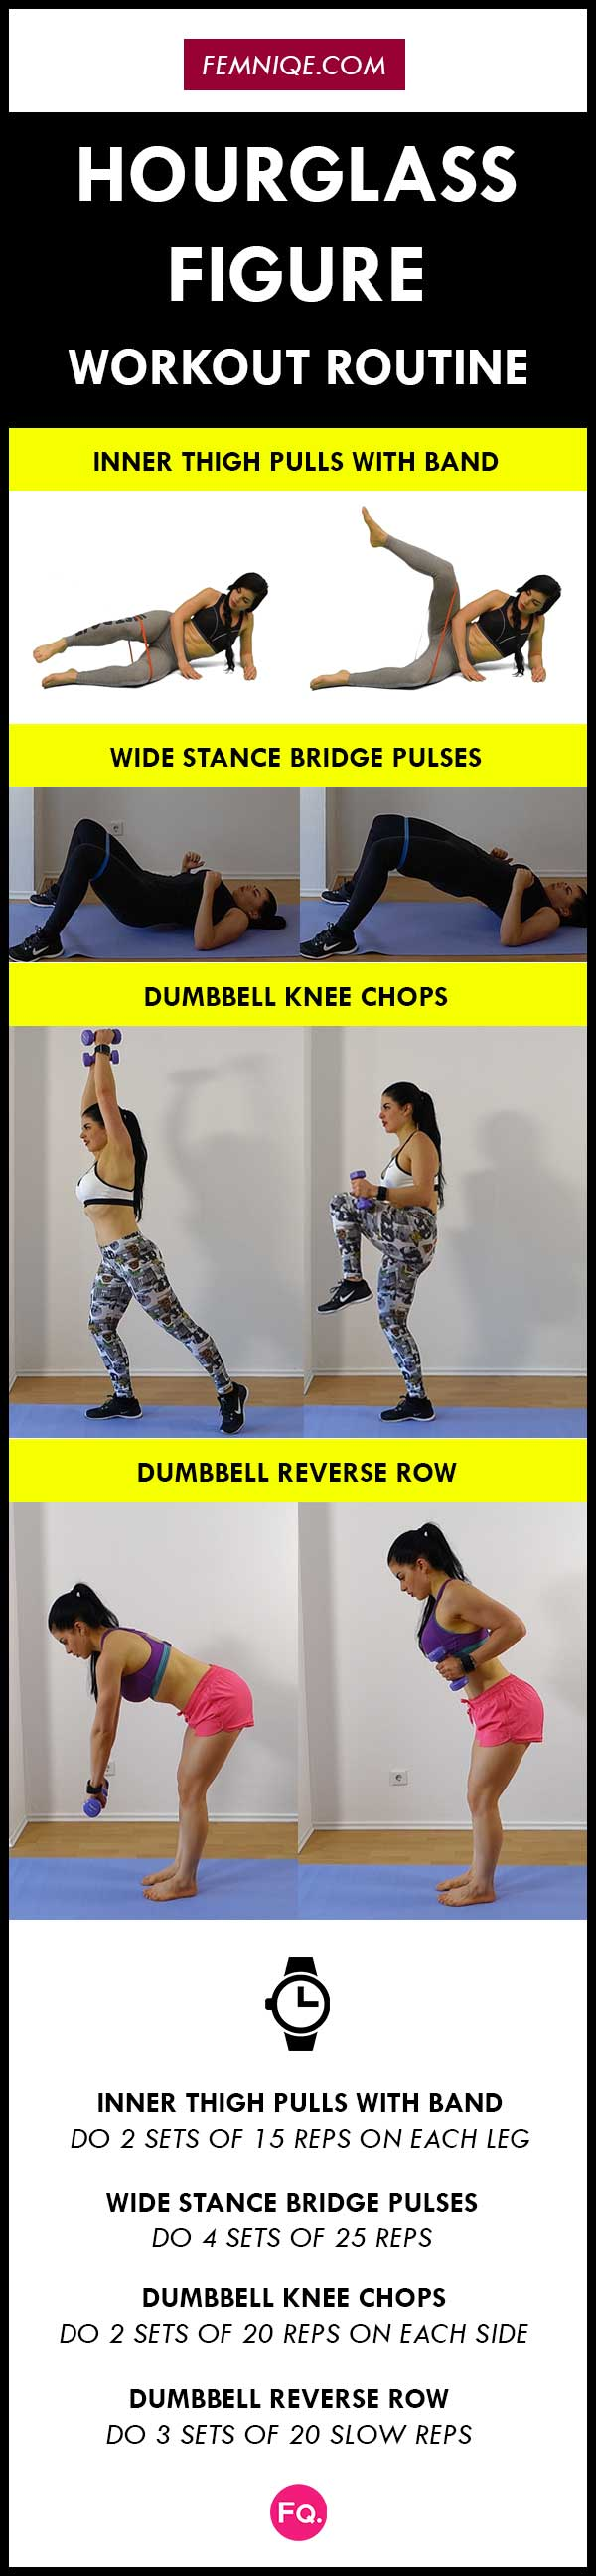 Hourglass workout plan gym